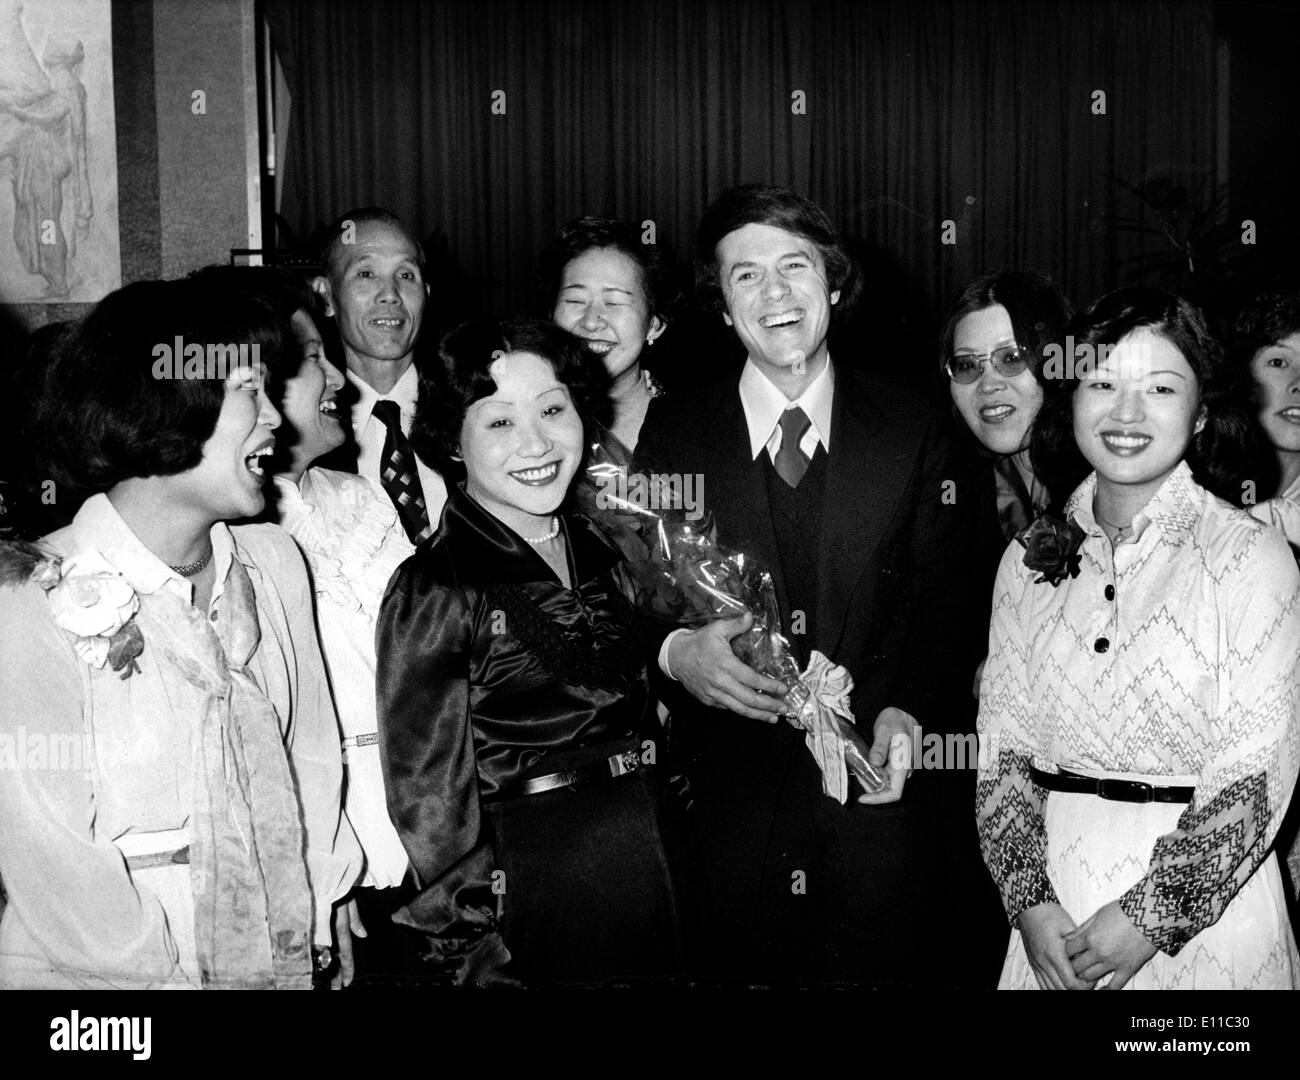 Dec 24, 1976; Paris, France; Winners of a contest from a famous Japanese journal won a trip to Paris to meet their favourite singer, SALVATORE ADAMO, who joyed them to meet the French capital. The picture shows the singer posing with his fans, who gave him some flowers. (Credit Image: KEYSTONE Pictures USA/ZUMAPRESS.com) - Stock Image